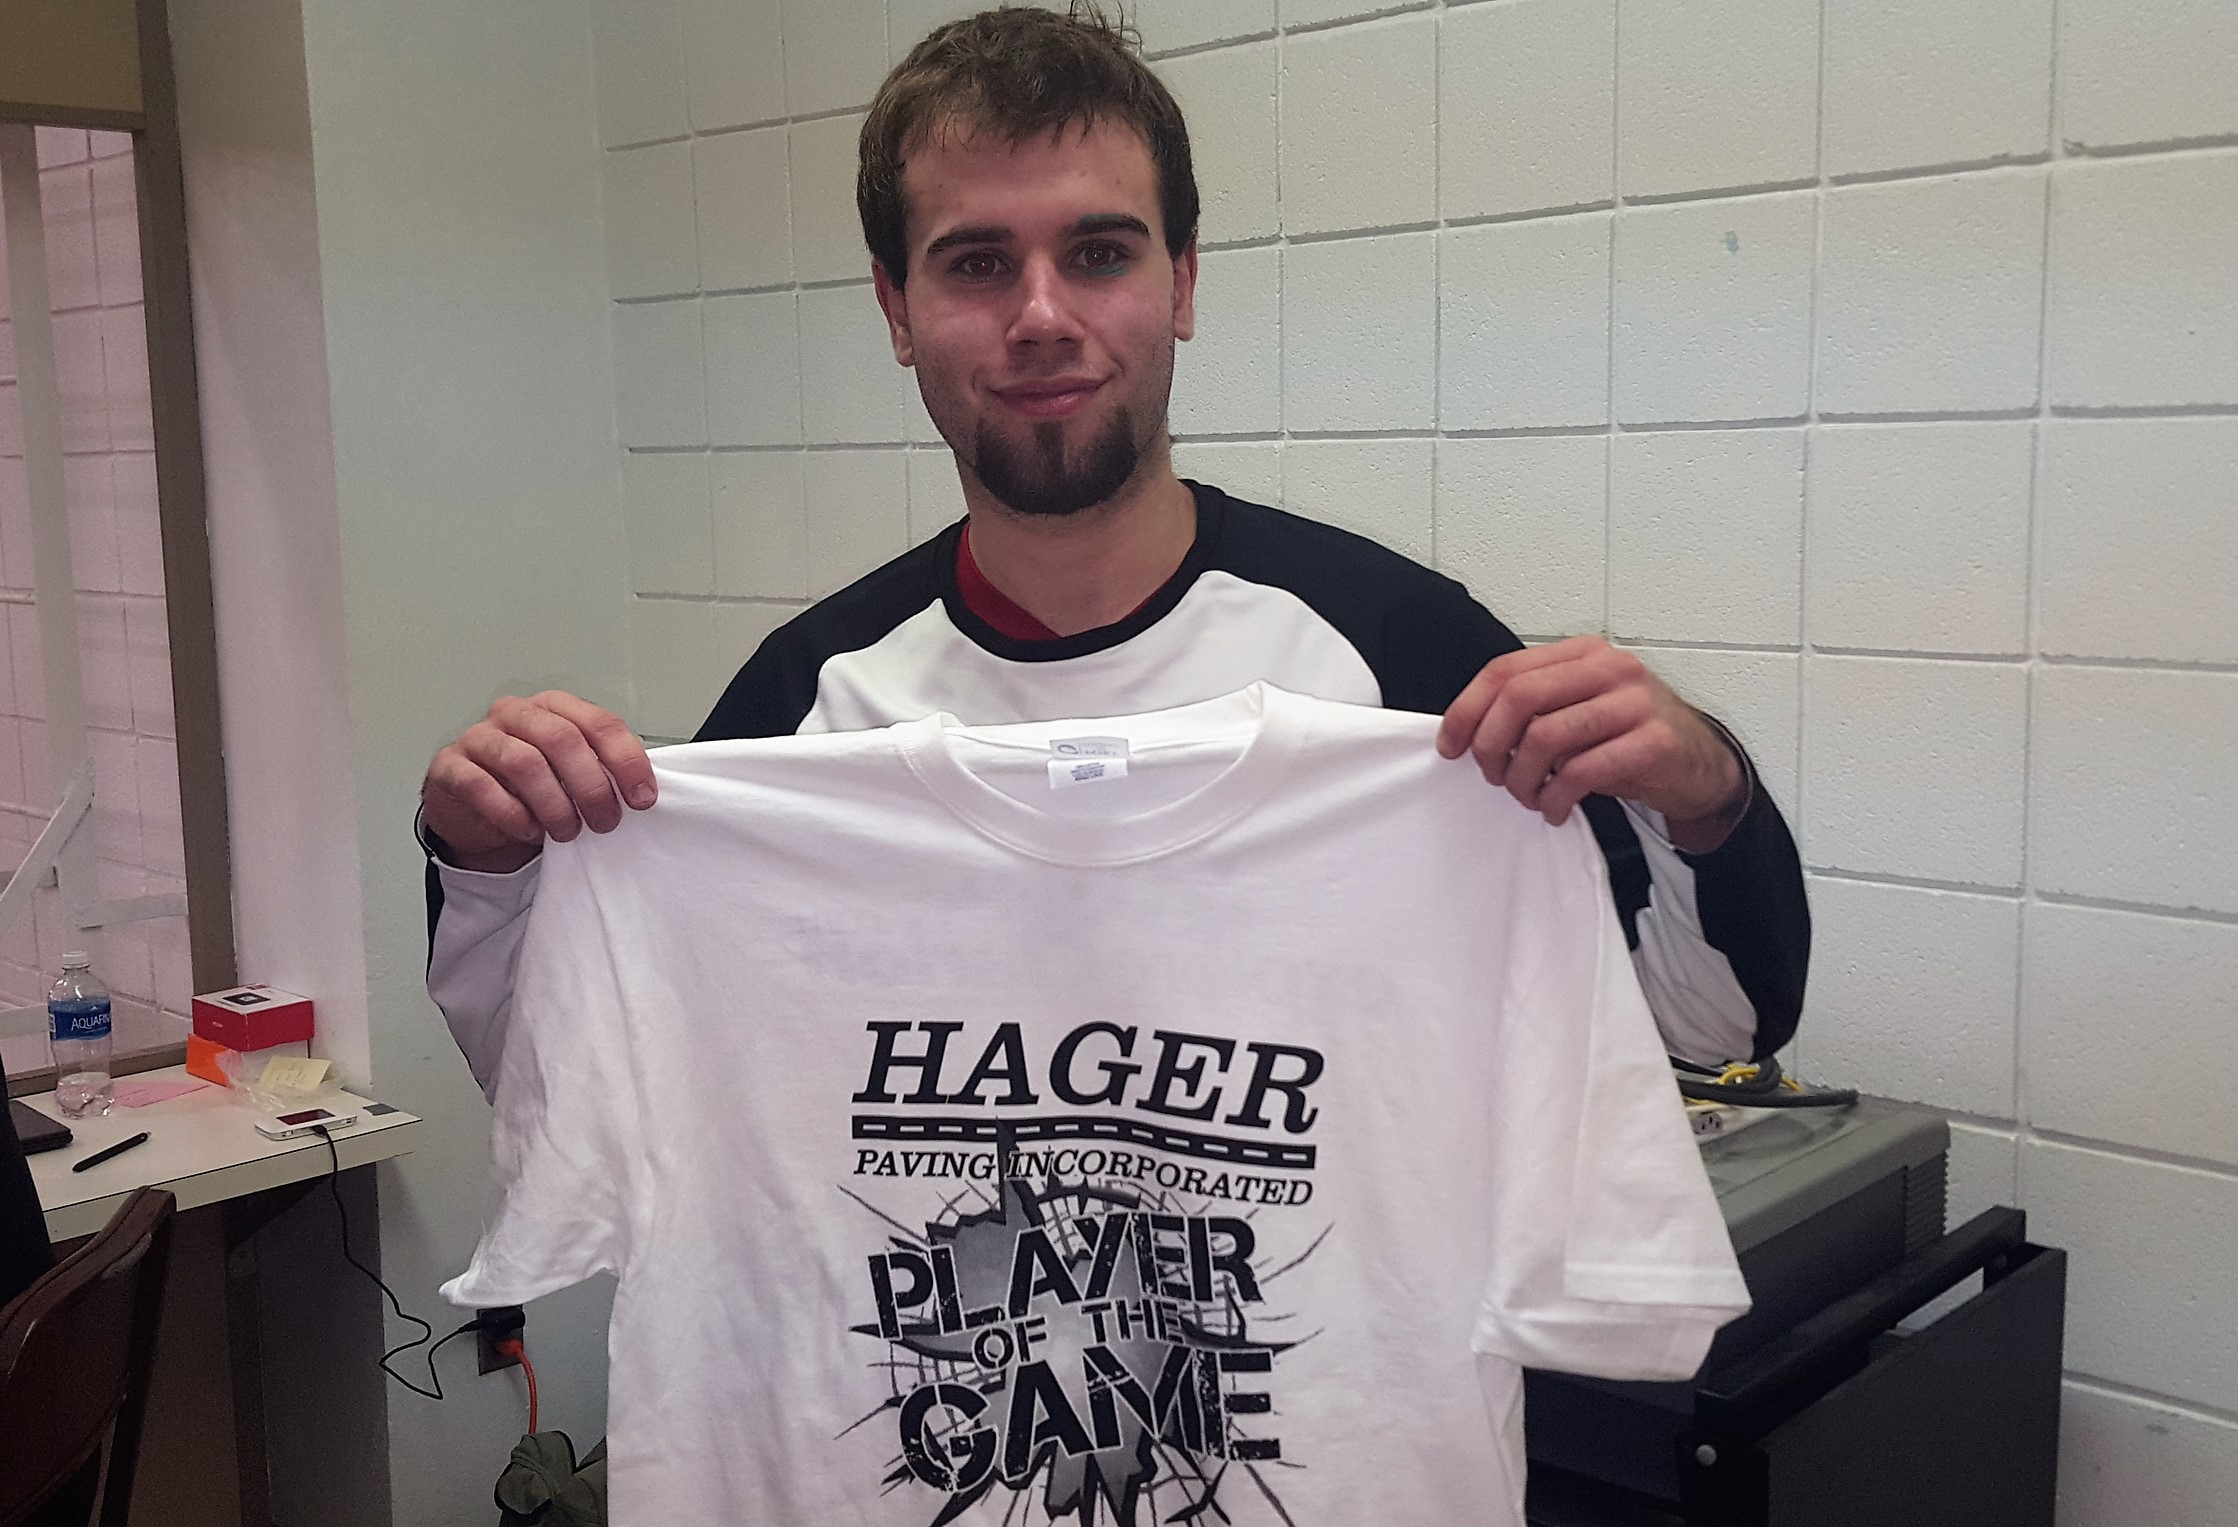 Jake Wineberg Hager Paving Player of the Game